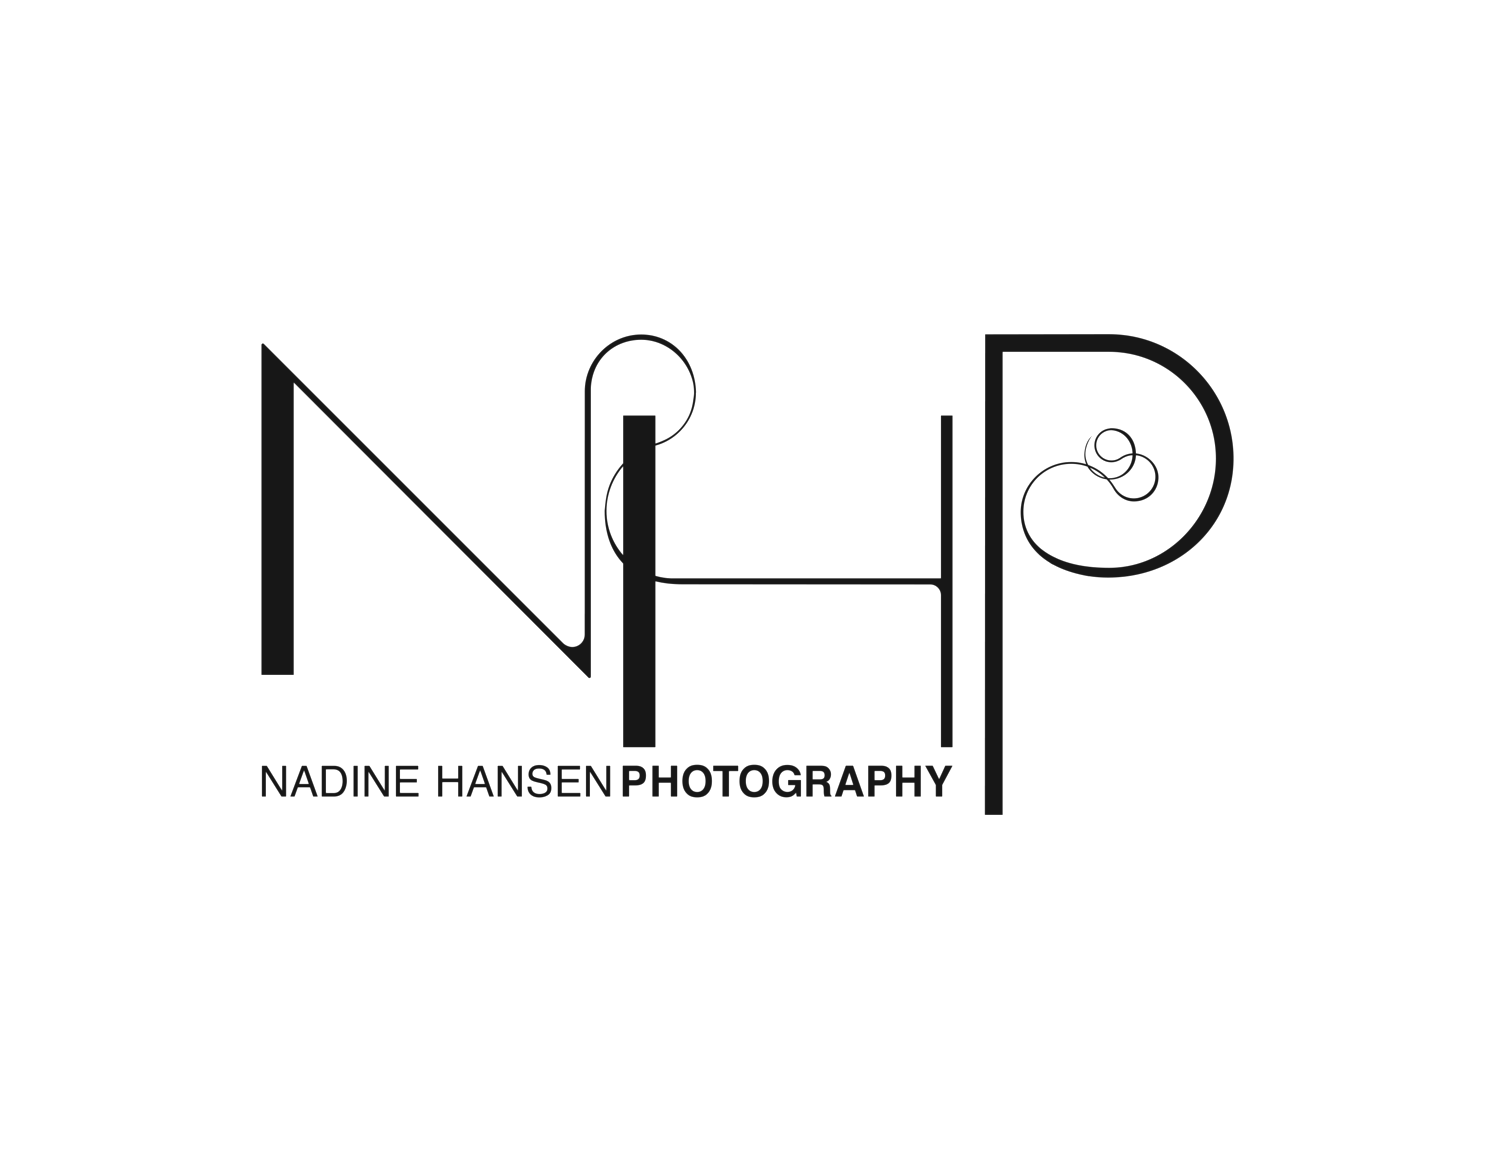 Nadine Hansen Photography